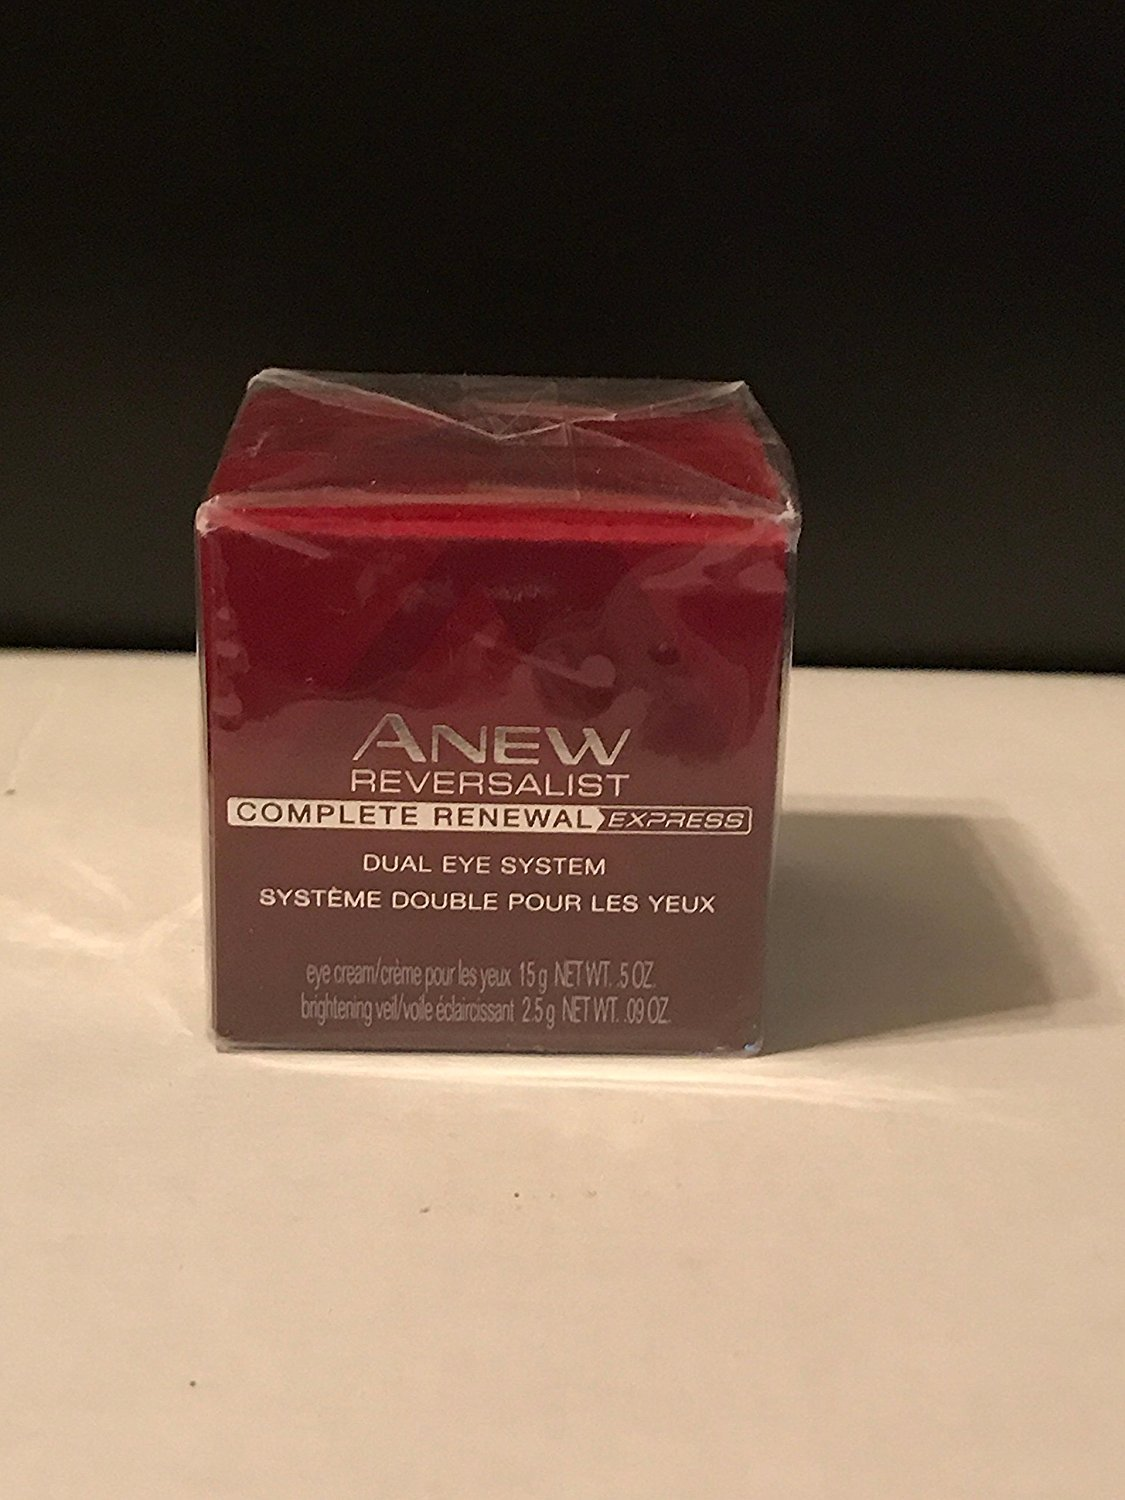 Avon Anew Reversalist Complete Renewal Express Dual Eye System